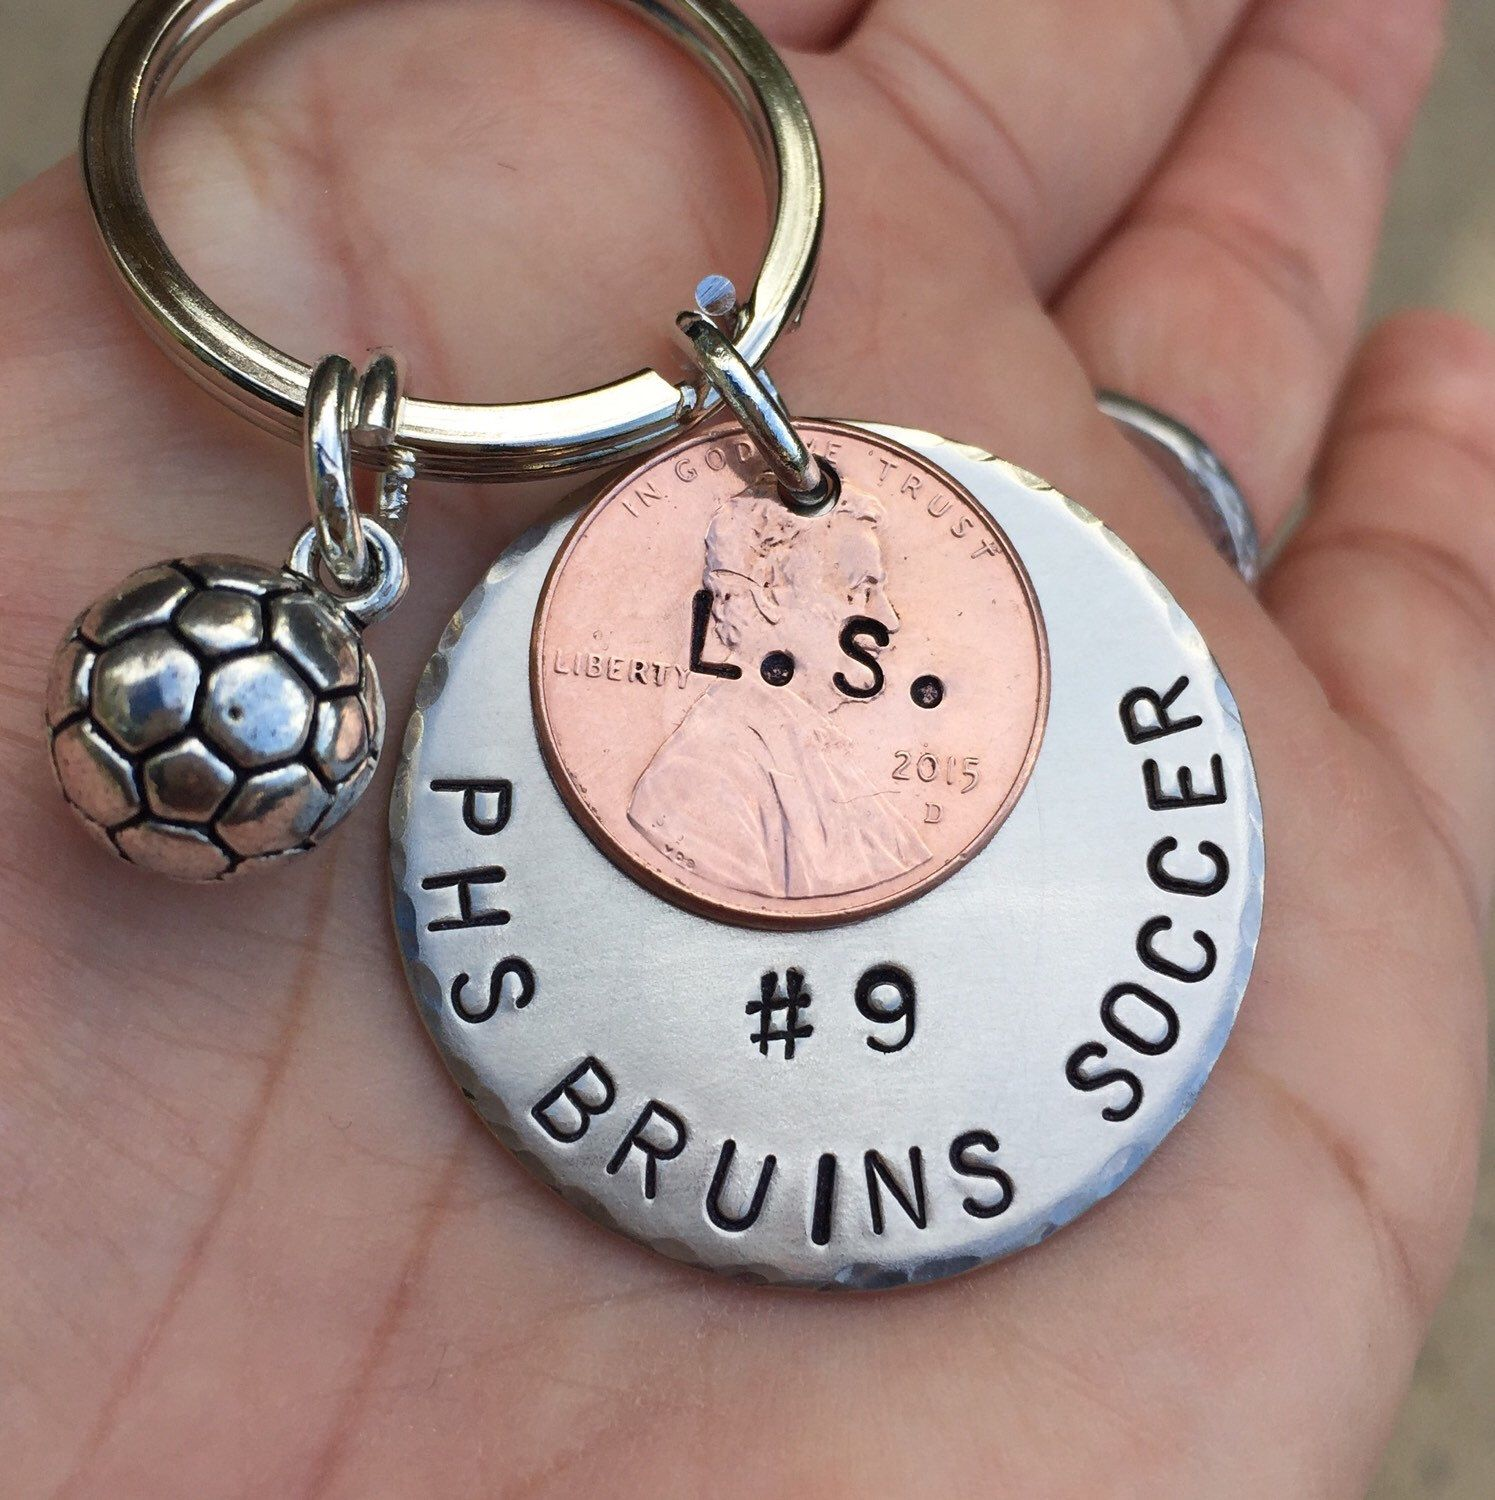 Graduation Gifts Soccer Gift High School Sports Keychain Volleyball Keychain Personalized High School Sport Keychain Football Soccer Gifts Sports Gifts Senior Gifts